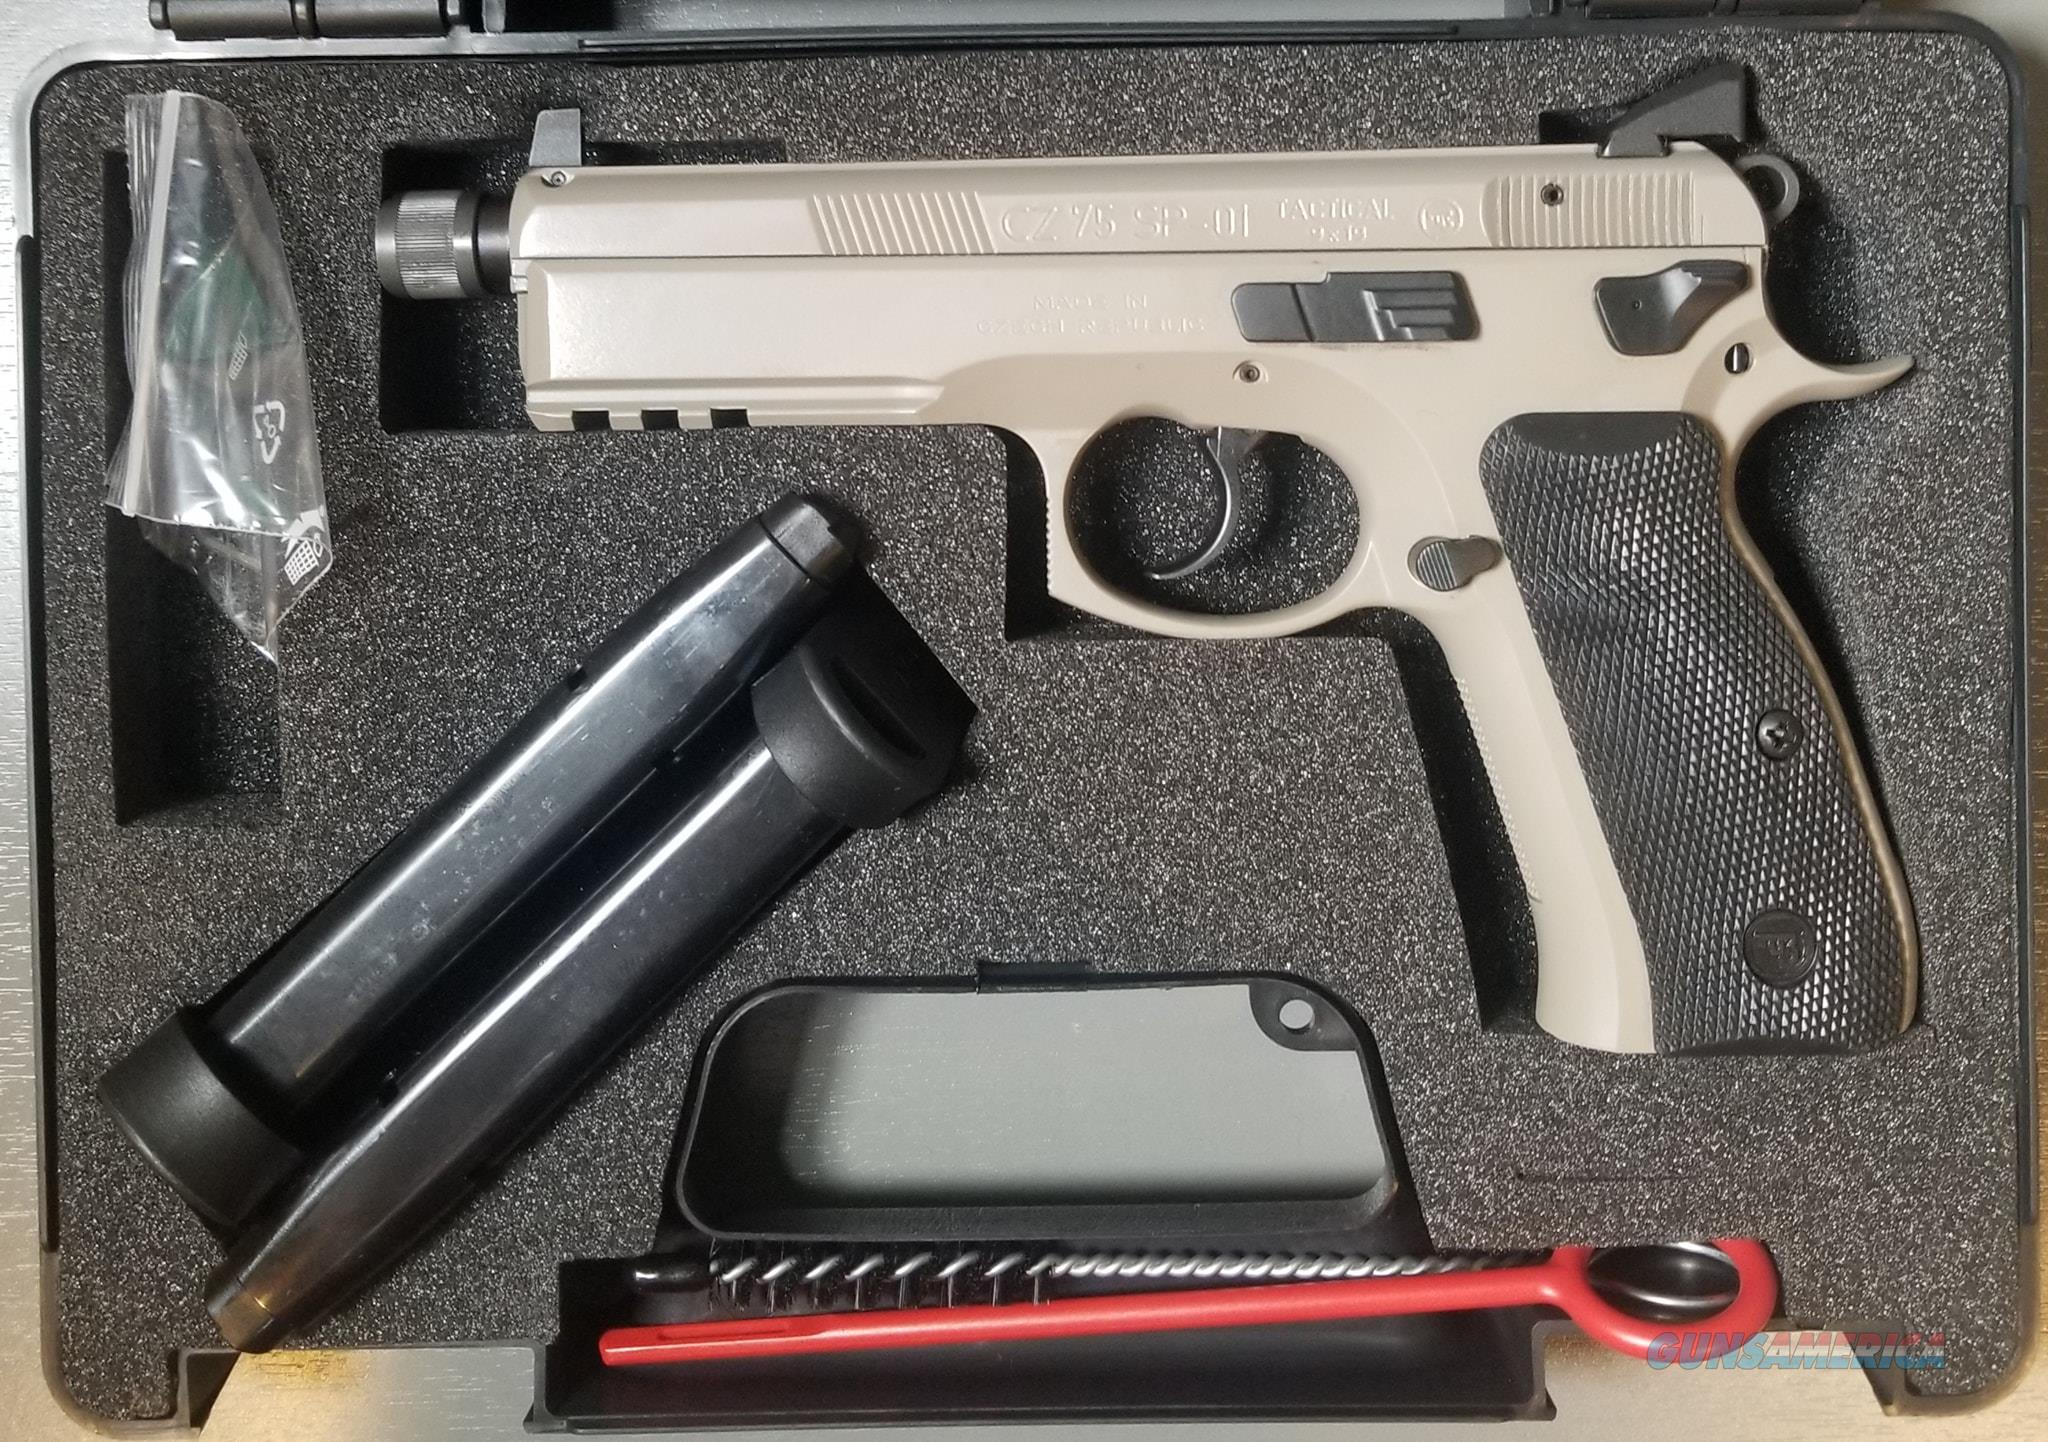 CZ 75 SP-01 Tactical Urban Grey Suppressor-Ready  Guns > Pistols > CZ Pistols